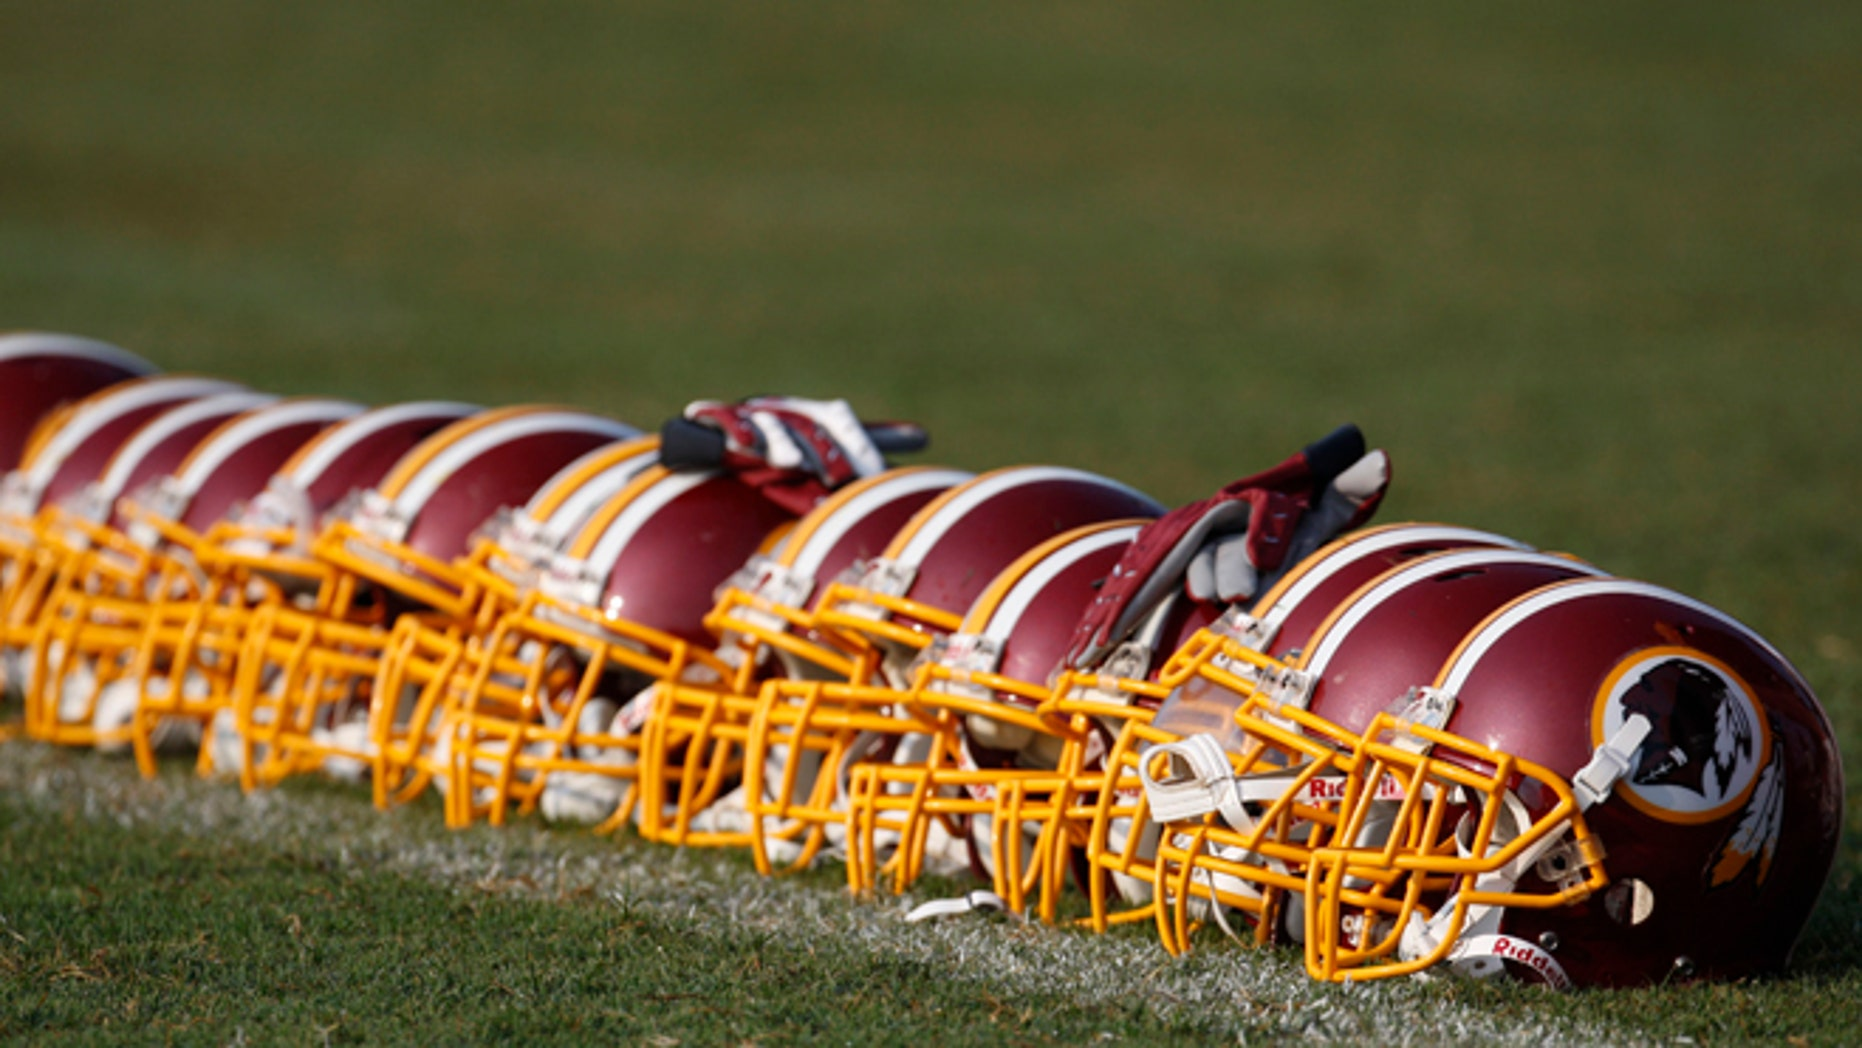 Aug. 4, 2009: Washington Redskins helmets are displayed on the field during NFL football training camp at Redskins Park in Ashburn, Va. (AP/Pablo Martinez Monsivais, File)